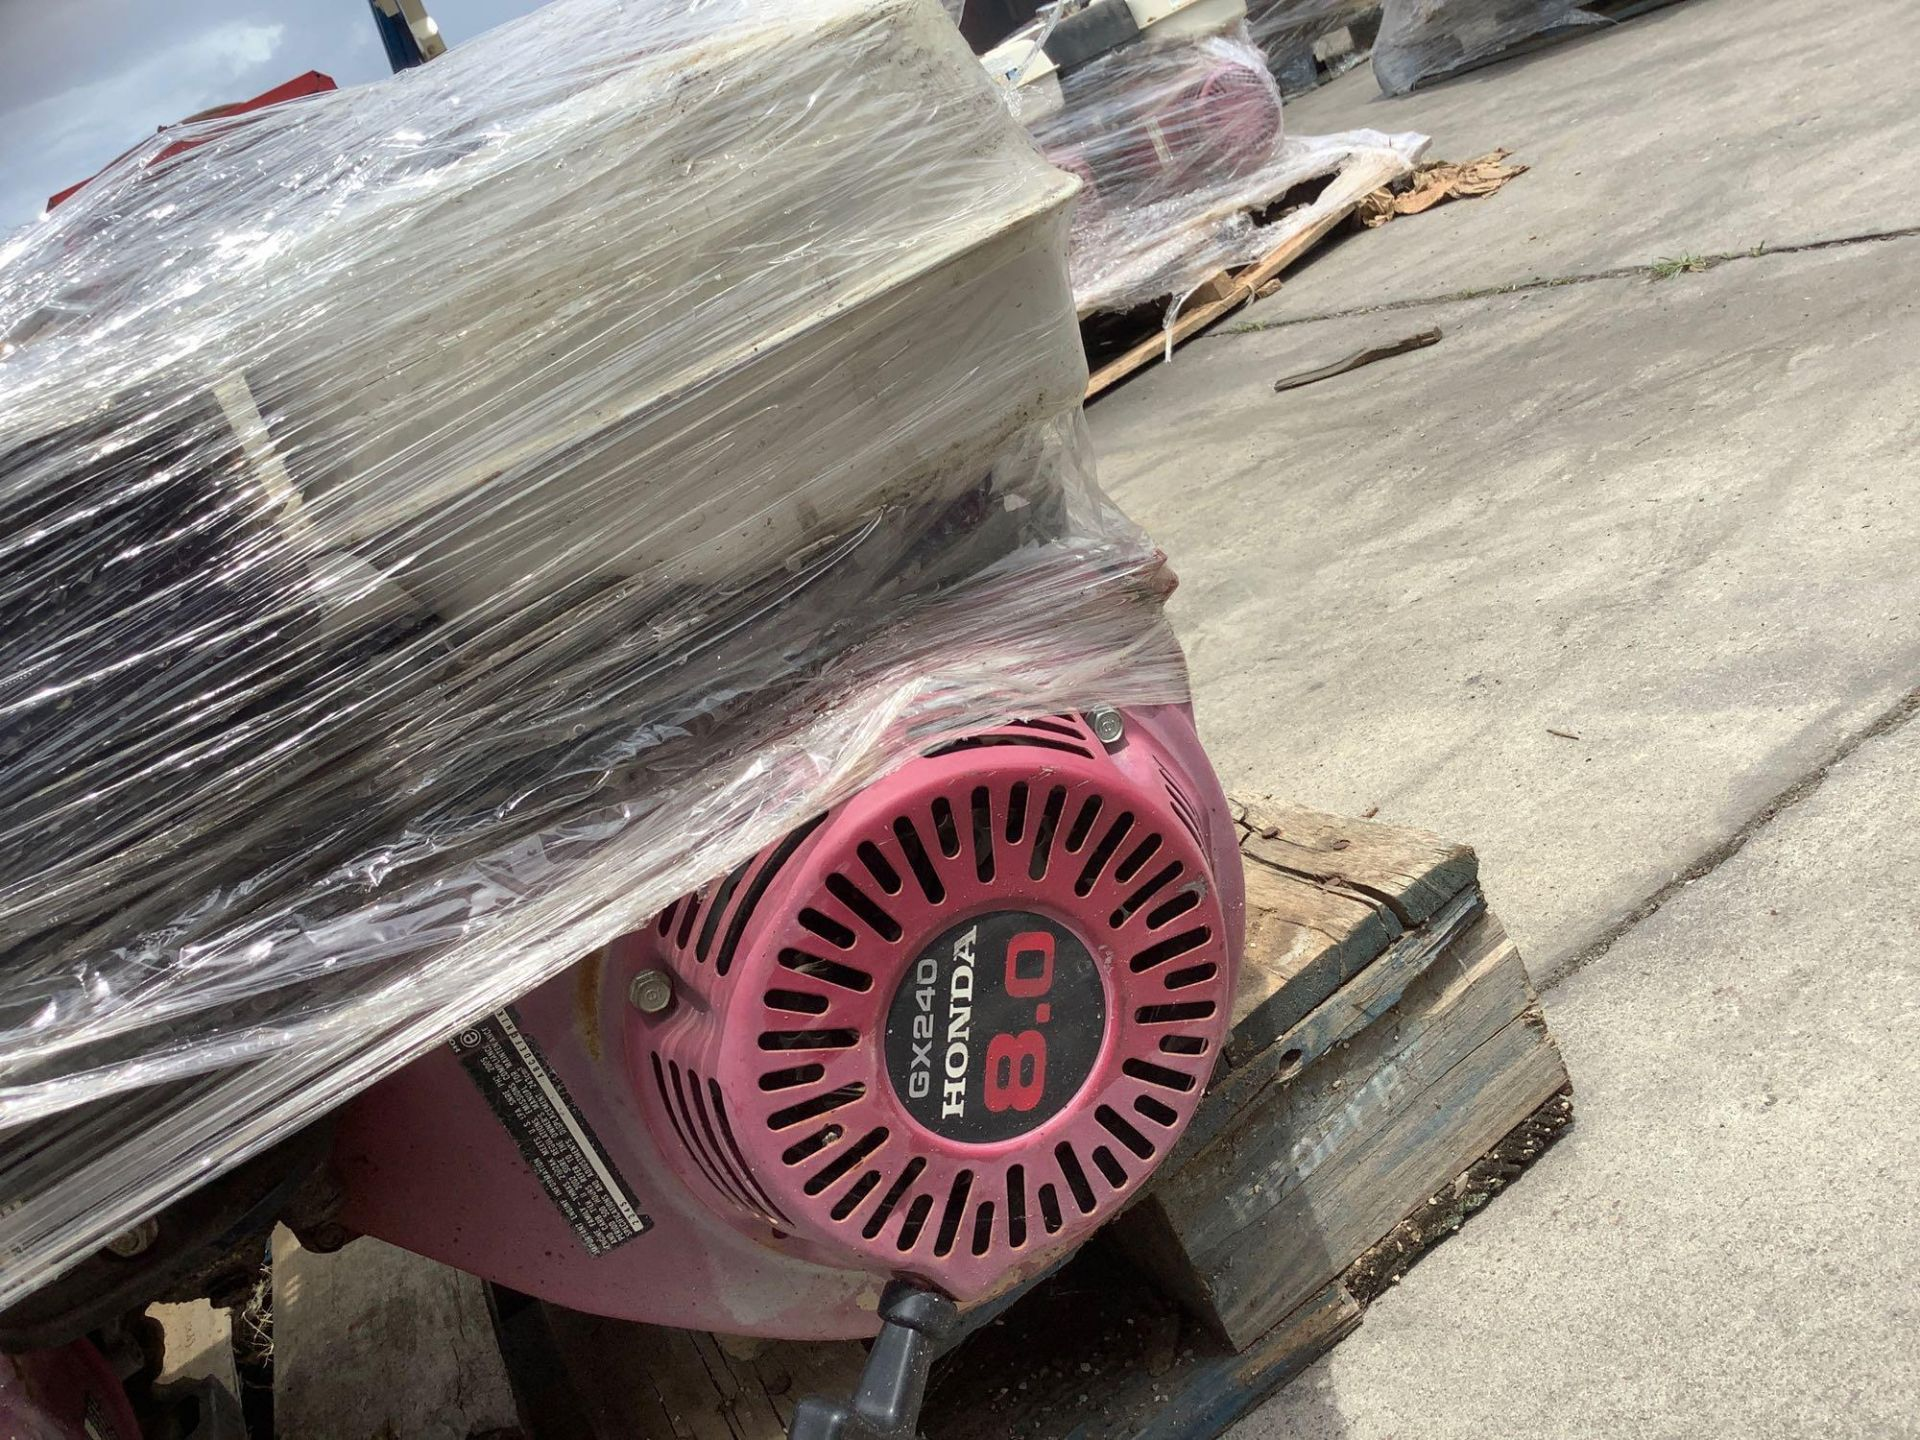 PALLET OF GAS HONDA GX 240 ENGINE , 8 HP, REMOVED FROM WORK SITE DOES RUN ALTHOUGH UNABLE TO GUARANT - Image 4 of 4